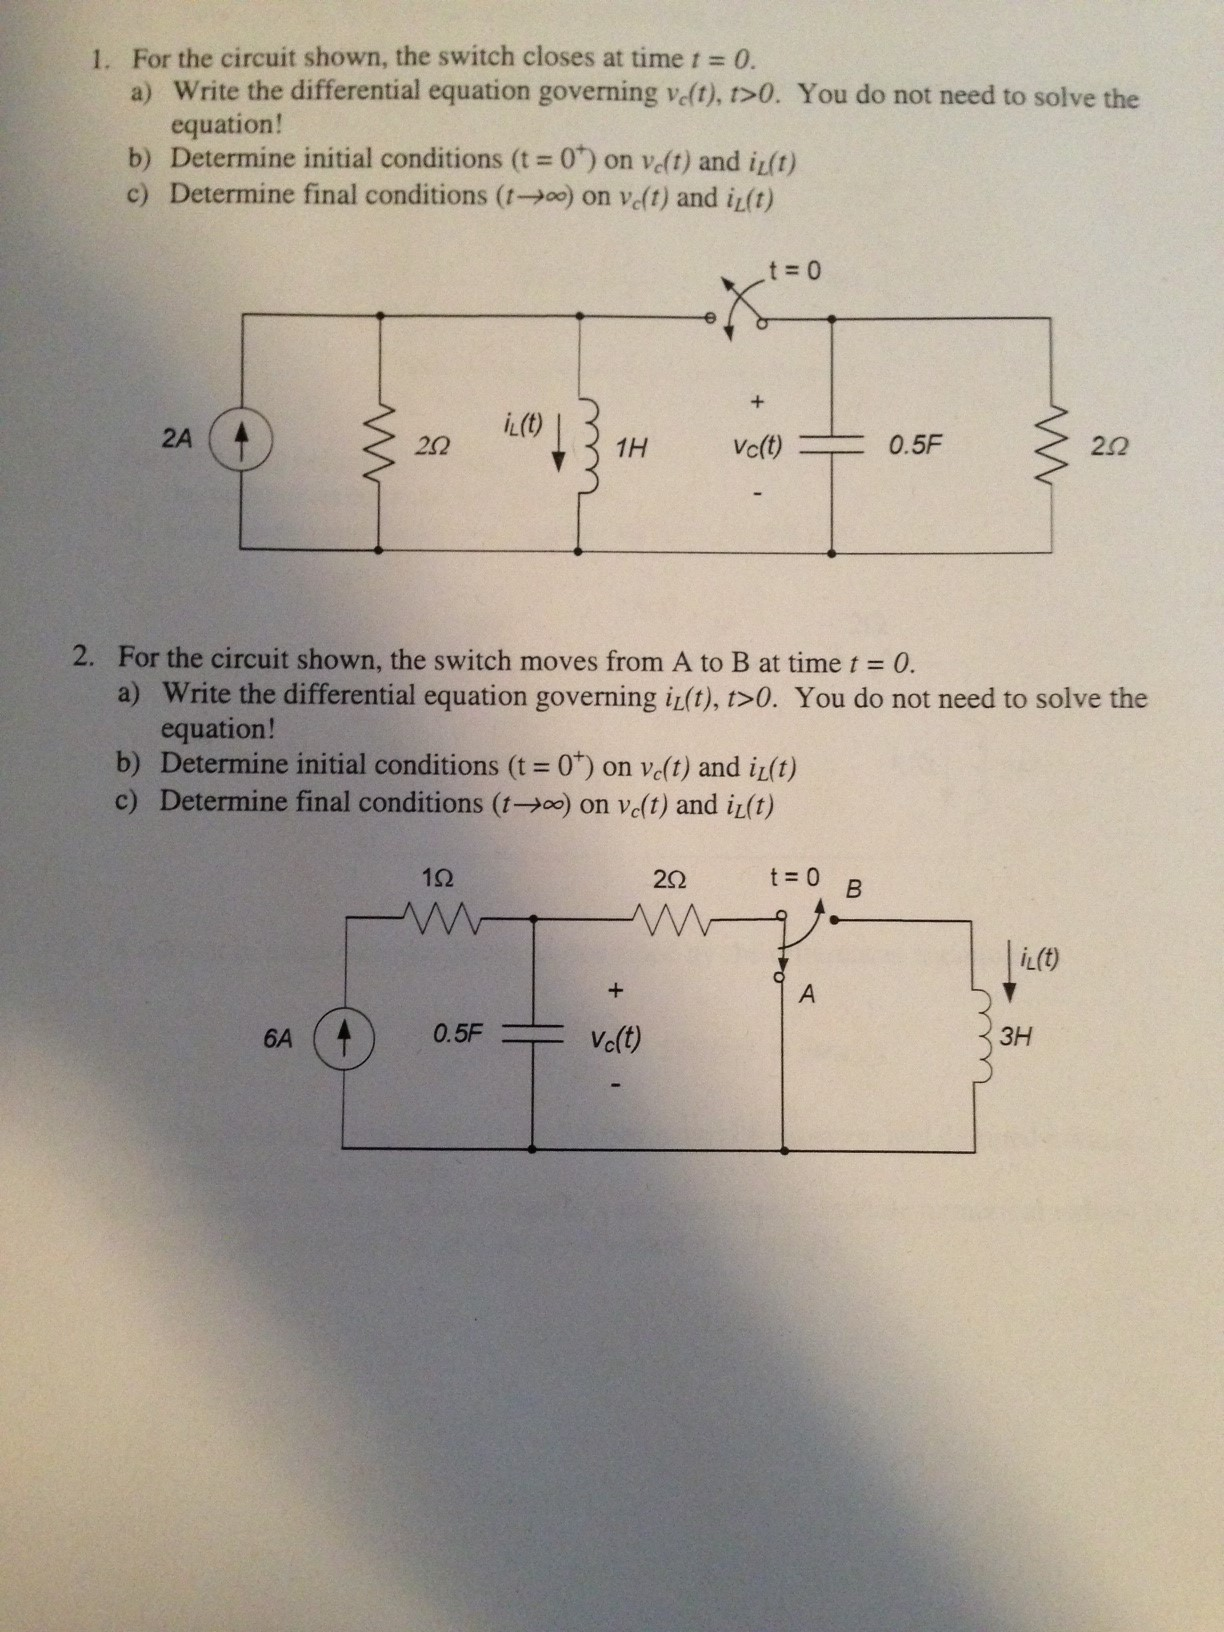 For the circuit shown, the switch closes at time t